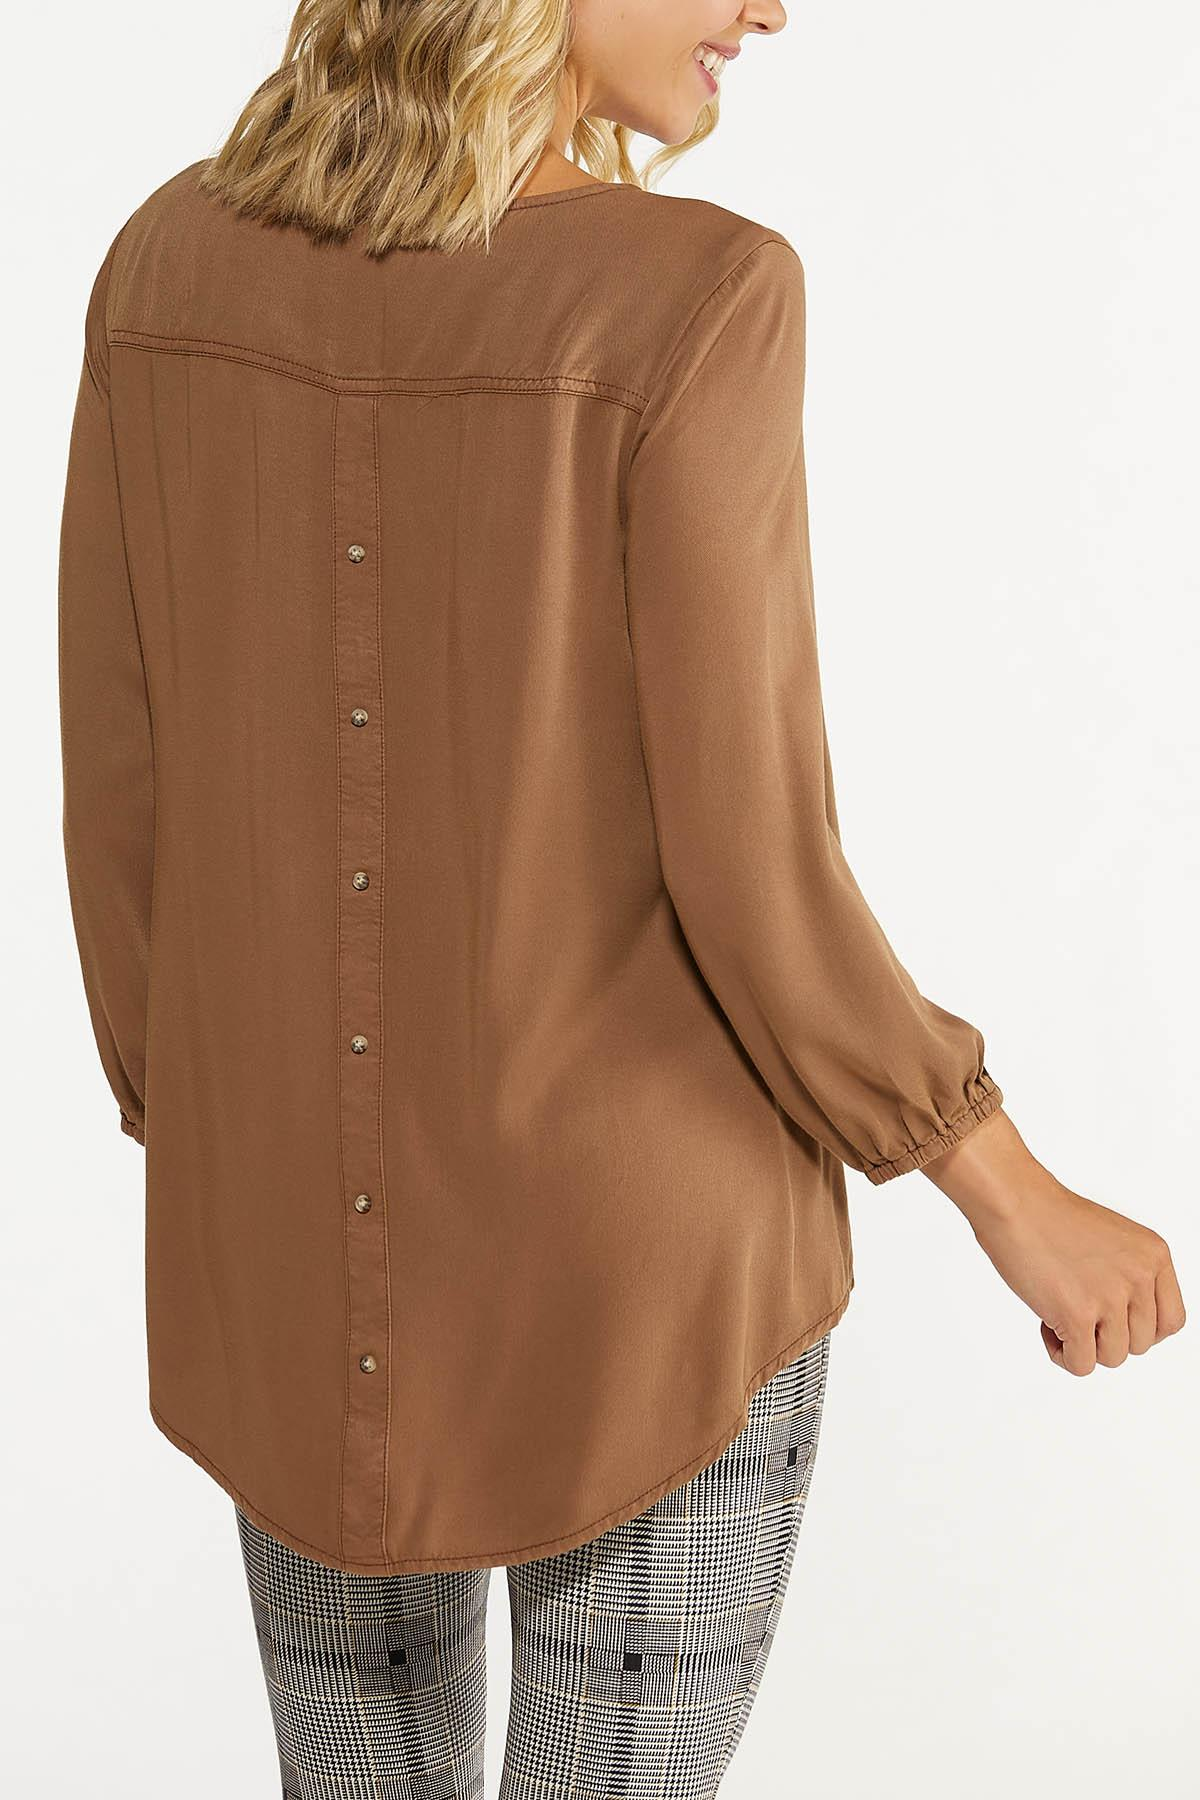 Plus Size Solid Button Back Top (Item #44659334)